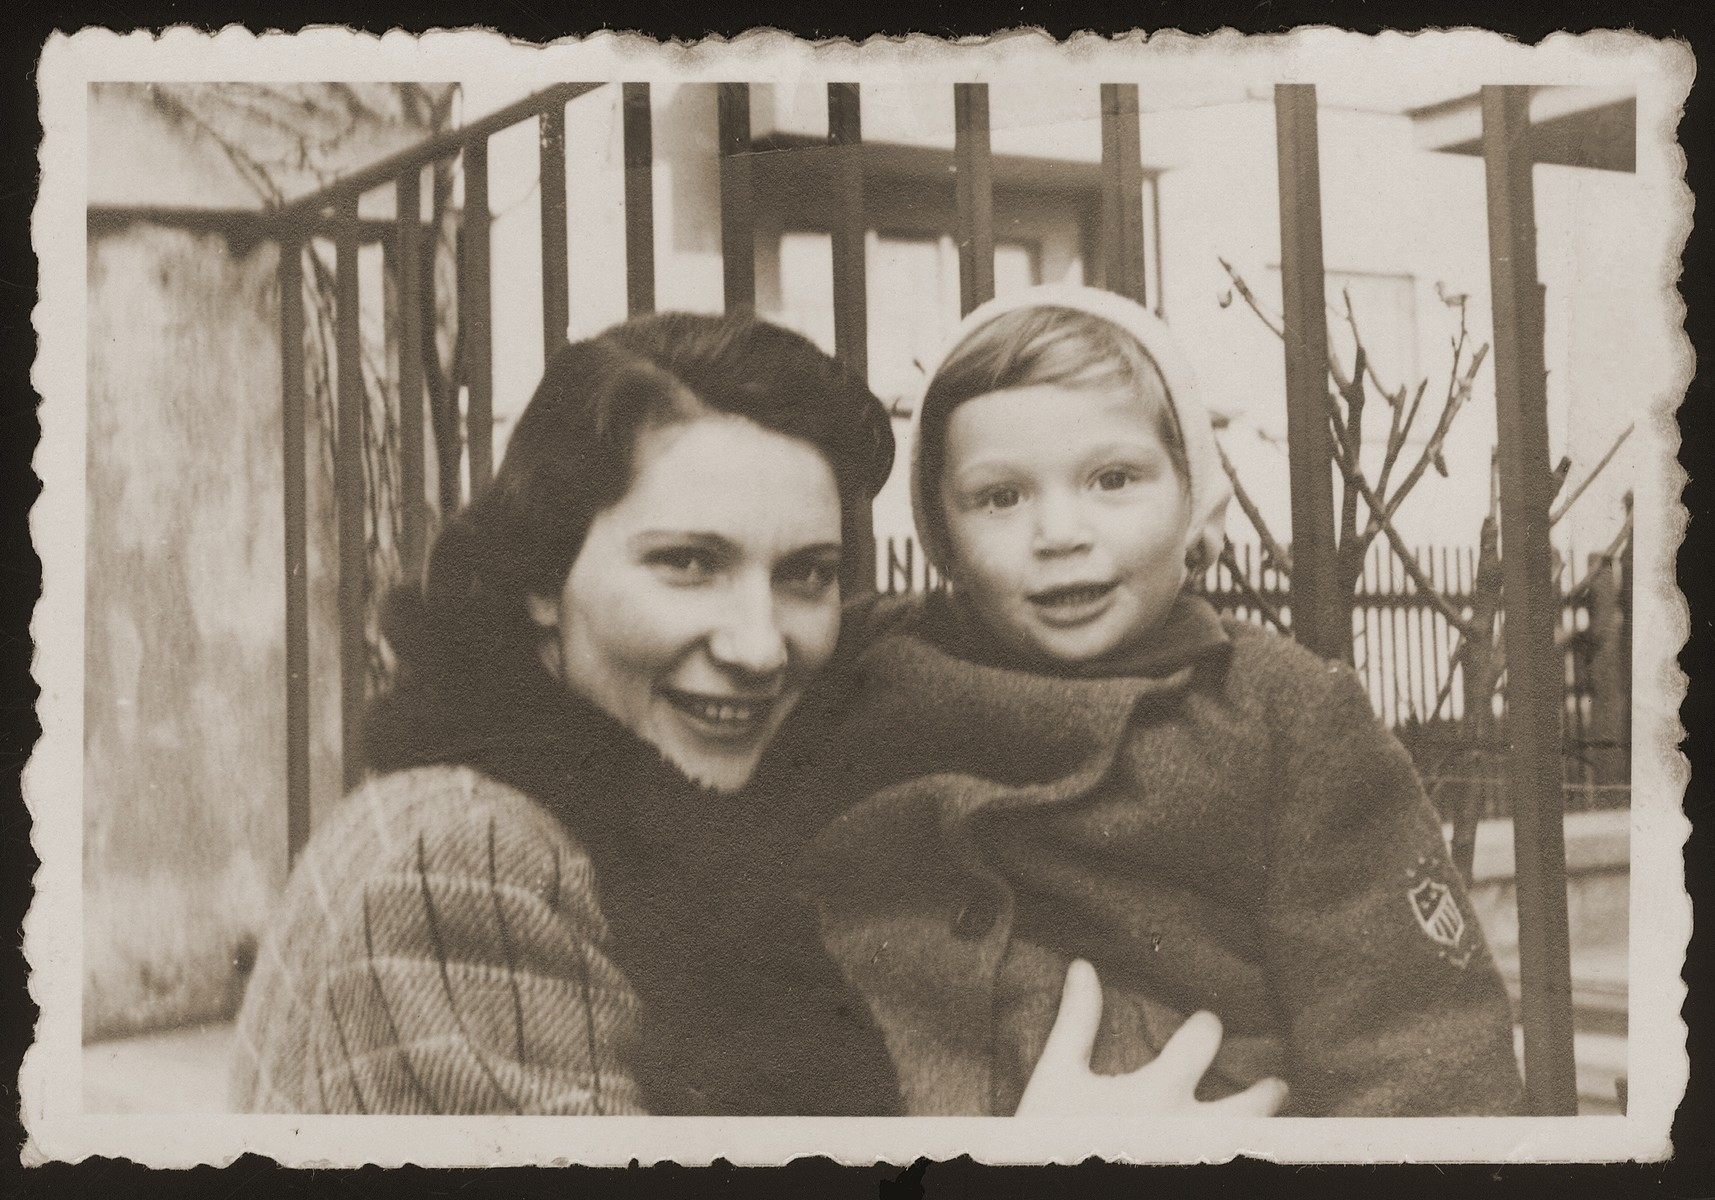 Wilma Goldstein poses with her son, Michael, in Olomouc, Czechoslovakia.    Bohus and Wilma (Redlich) Goldstein had two children, Eva and Michael.  The family lived in Olomouc, where Bohus worked for the Prague autoworks.  All four perished during the war.